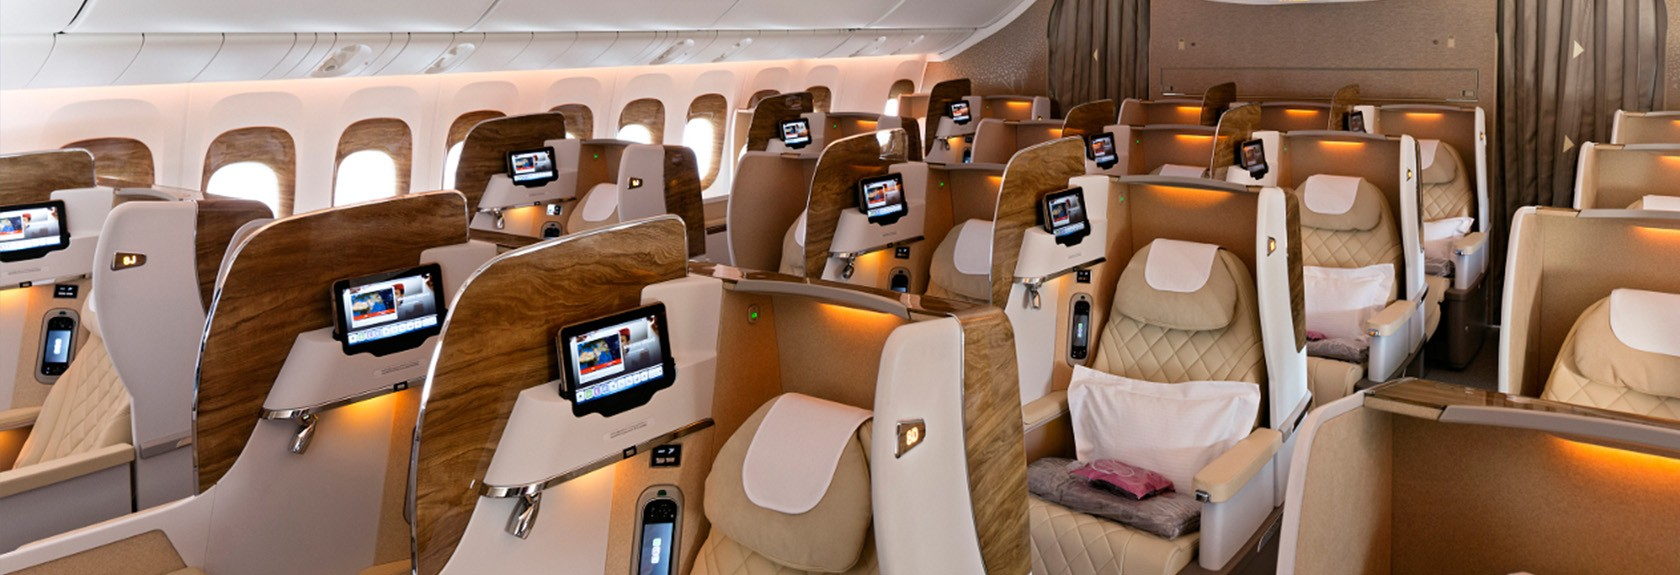 Alles over dubai de nederlandse reisgids over dubai for Interieur boeing 777